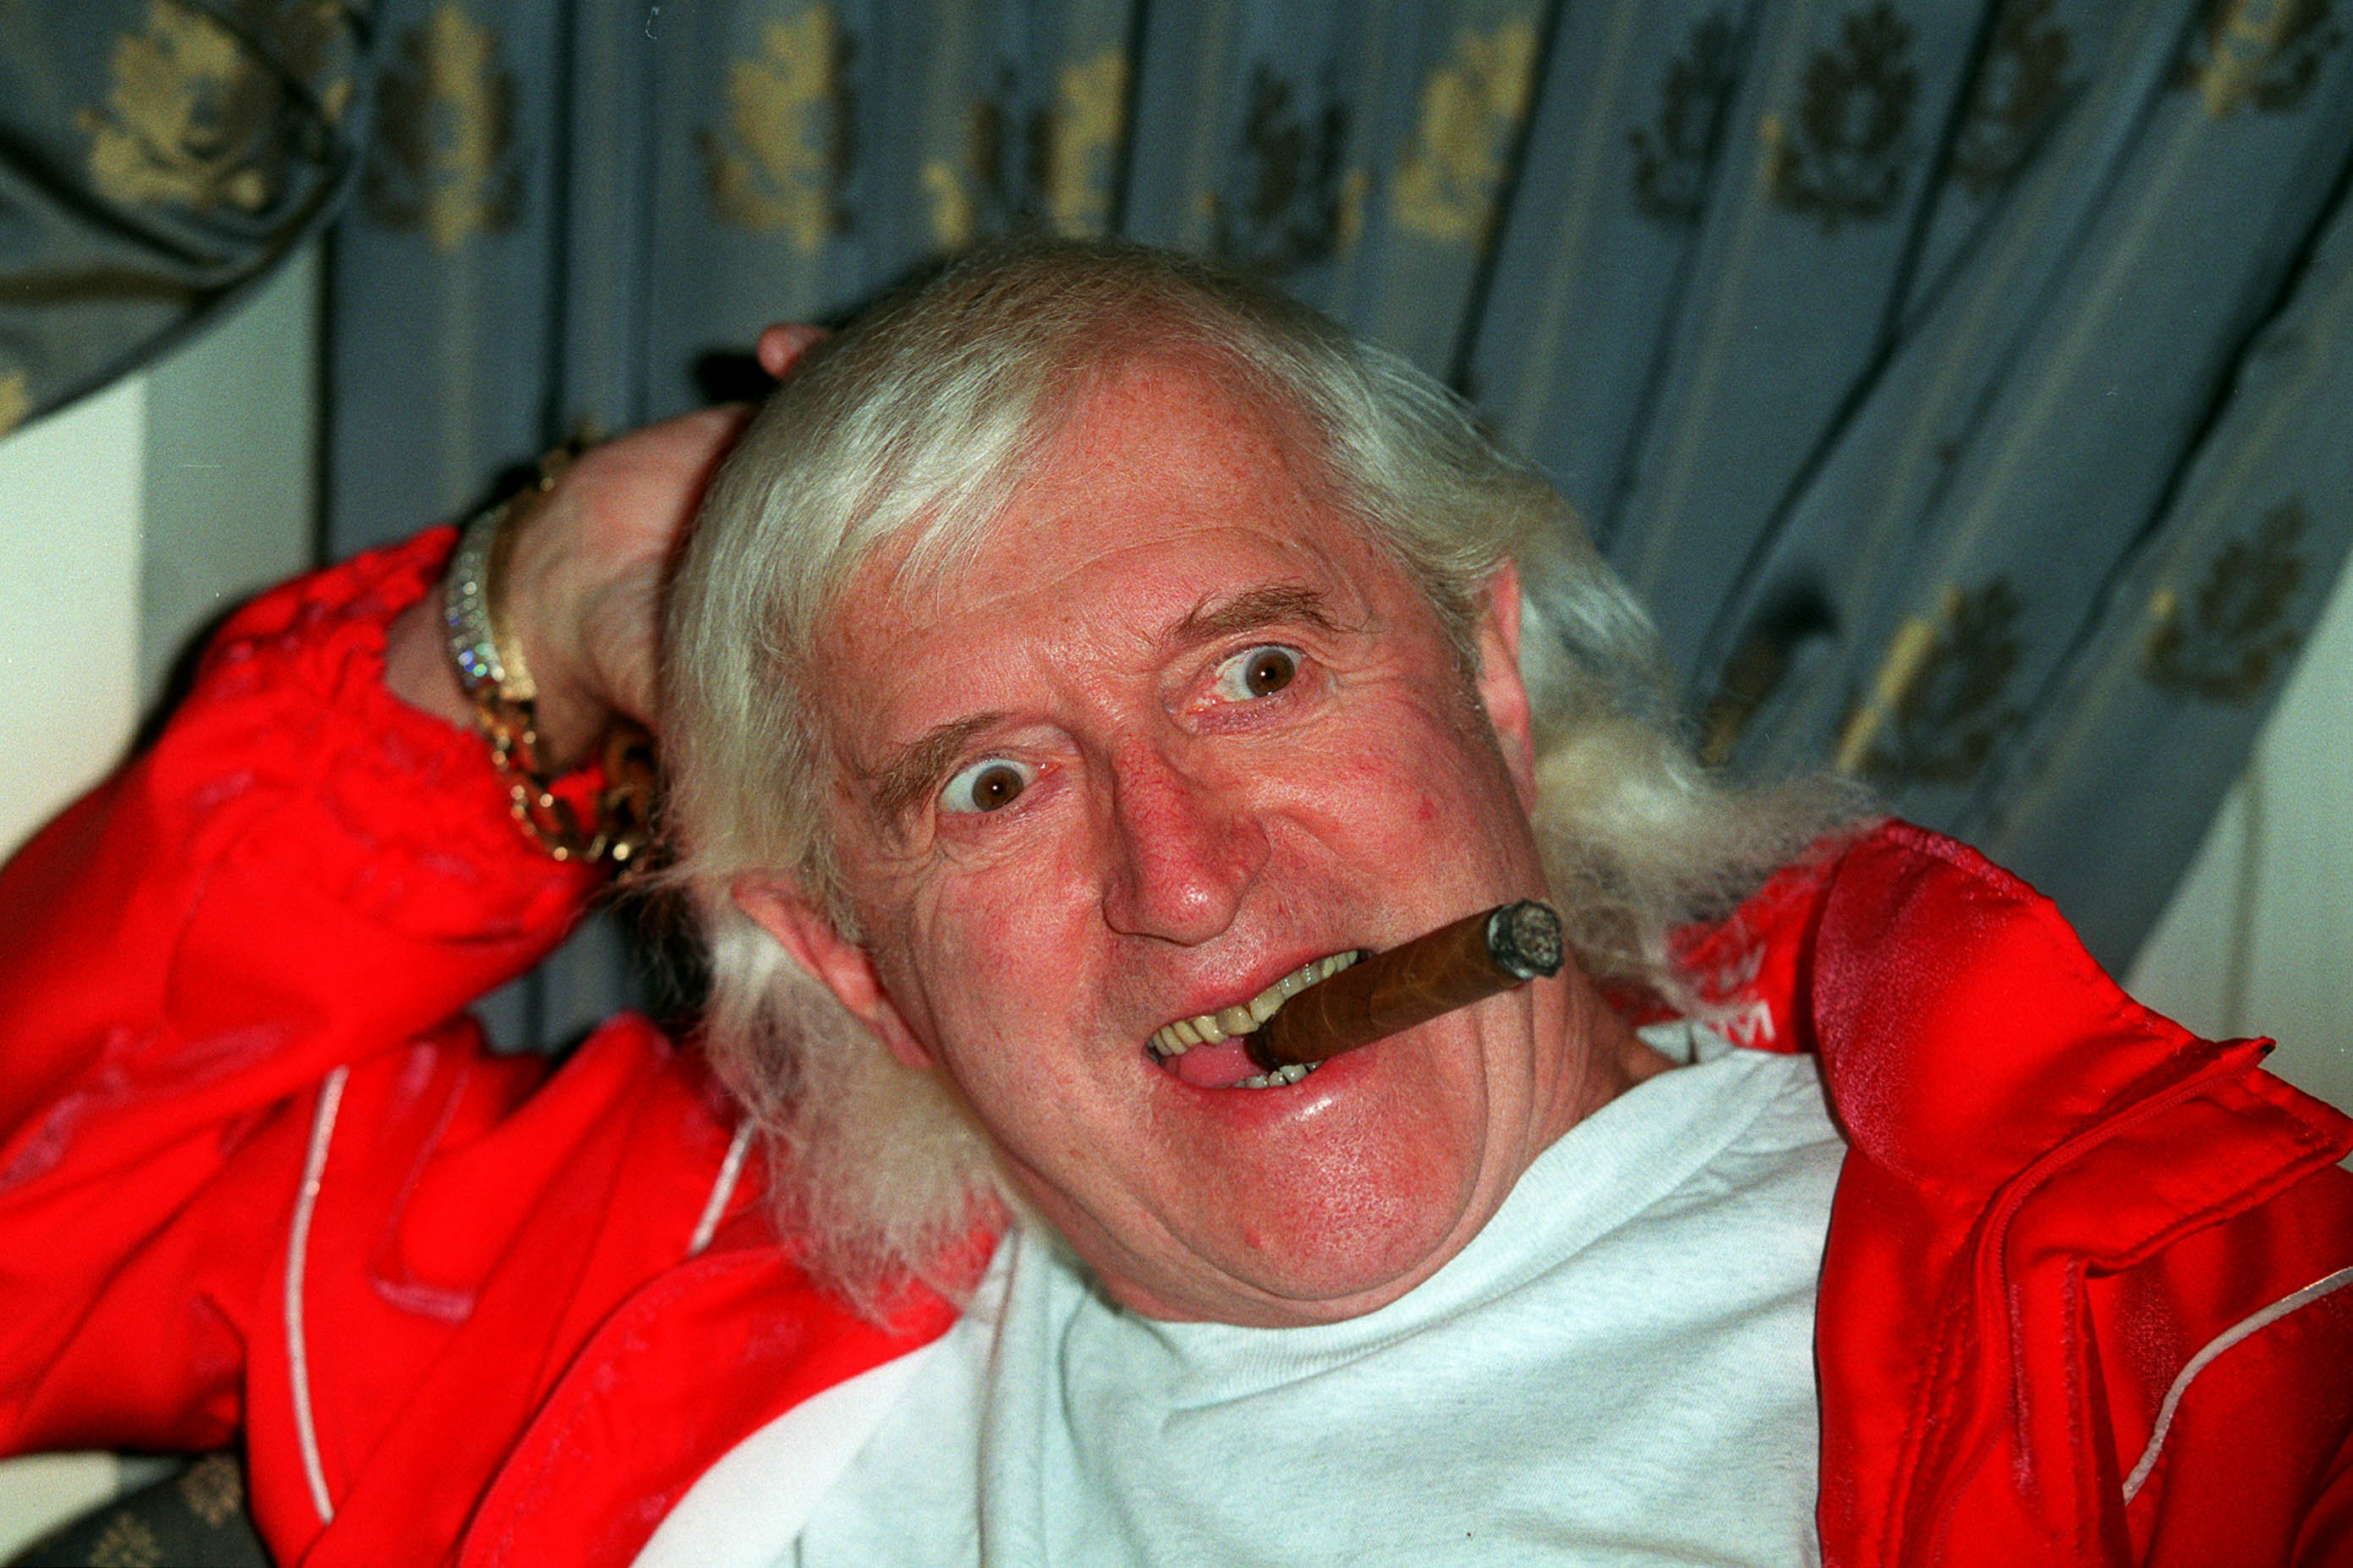 Savile inquiry evidence to be published by BBC